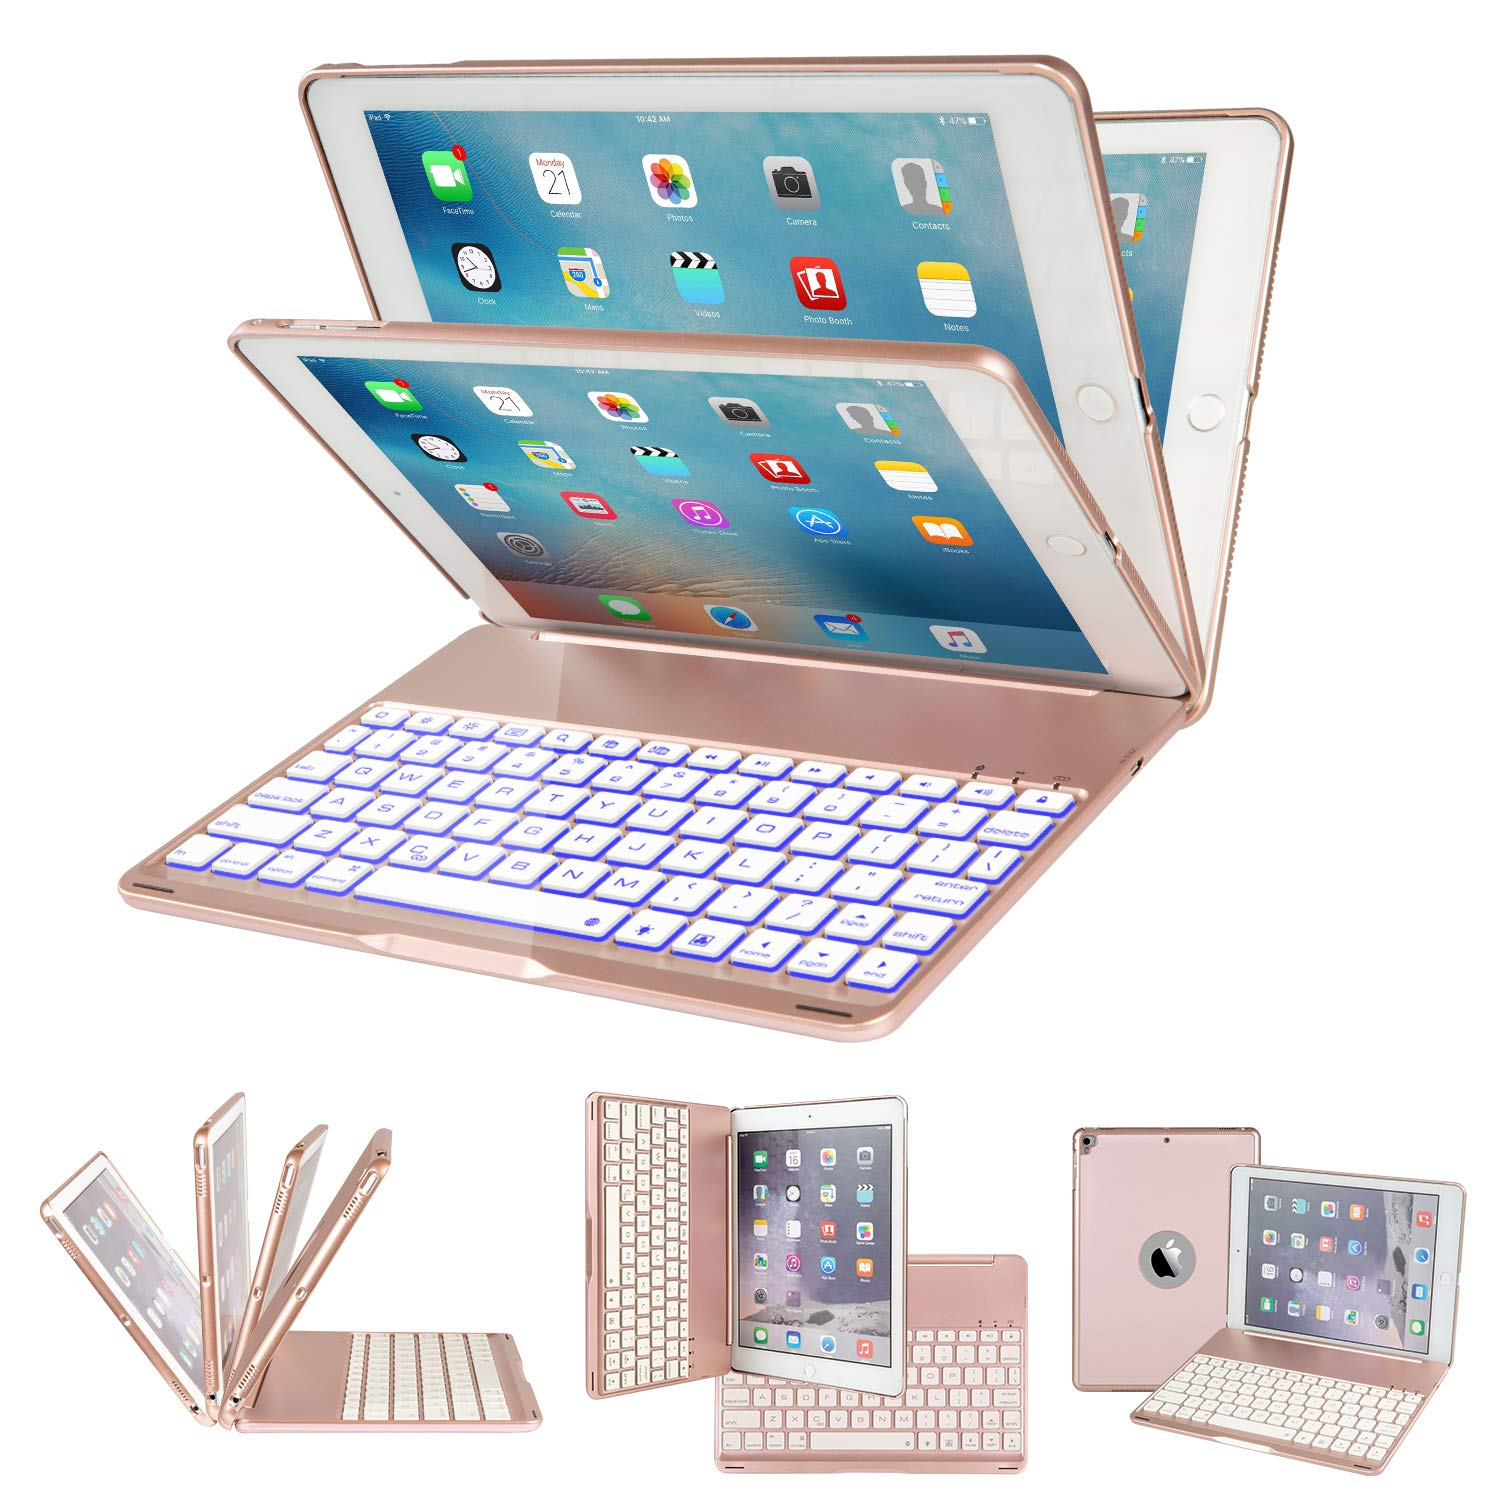 IEGROW iPad Keyboard Case for iPad 6th Gen (2018)- iPad 5th Gen (2017)- iPad Pro 9.7- iPad Air- iPad Air 2-135 Degree Rotation- 7 Color Backlits- Wireless Flip Cover with Keyboard (Rose Gold-F8AS)